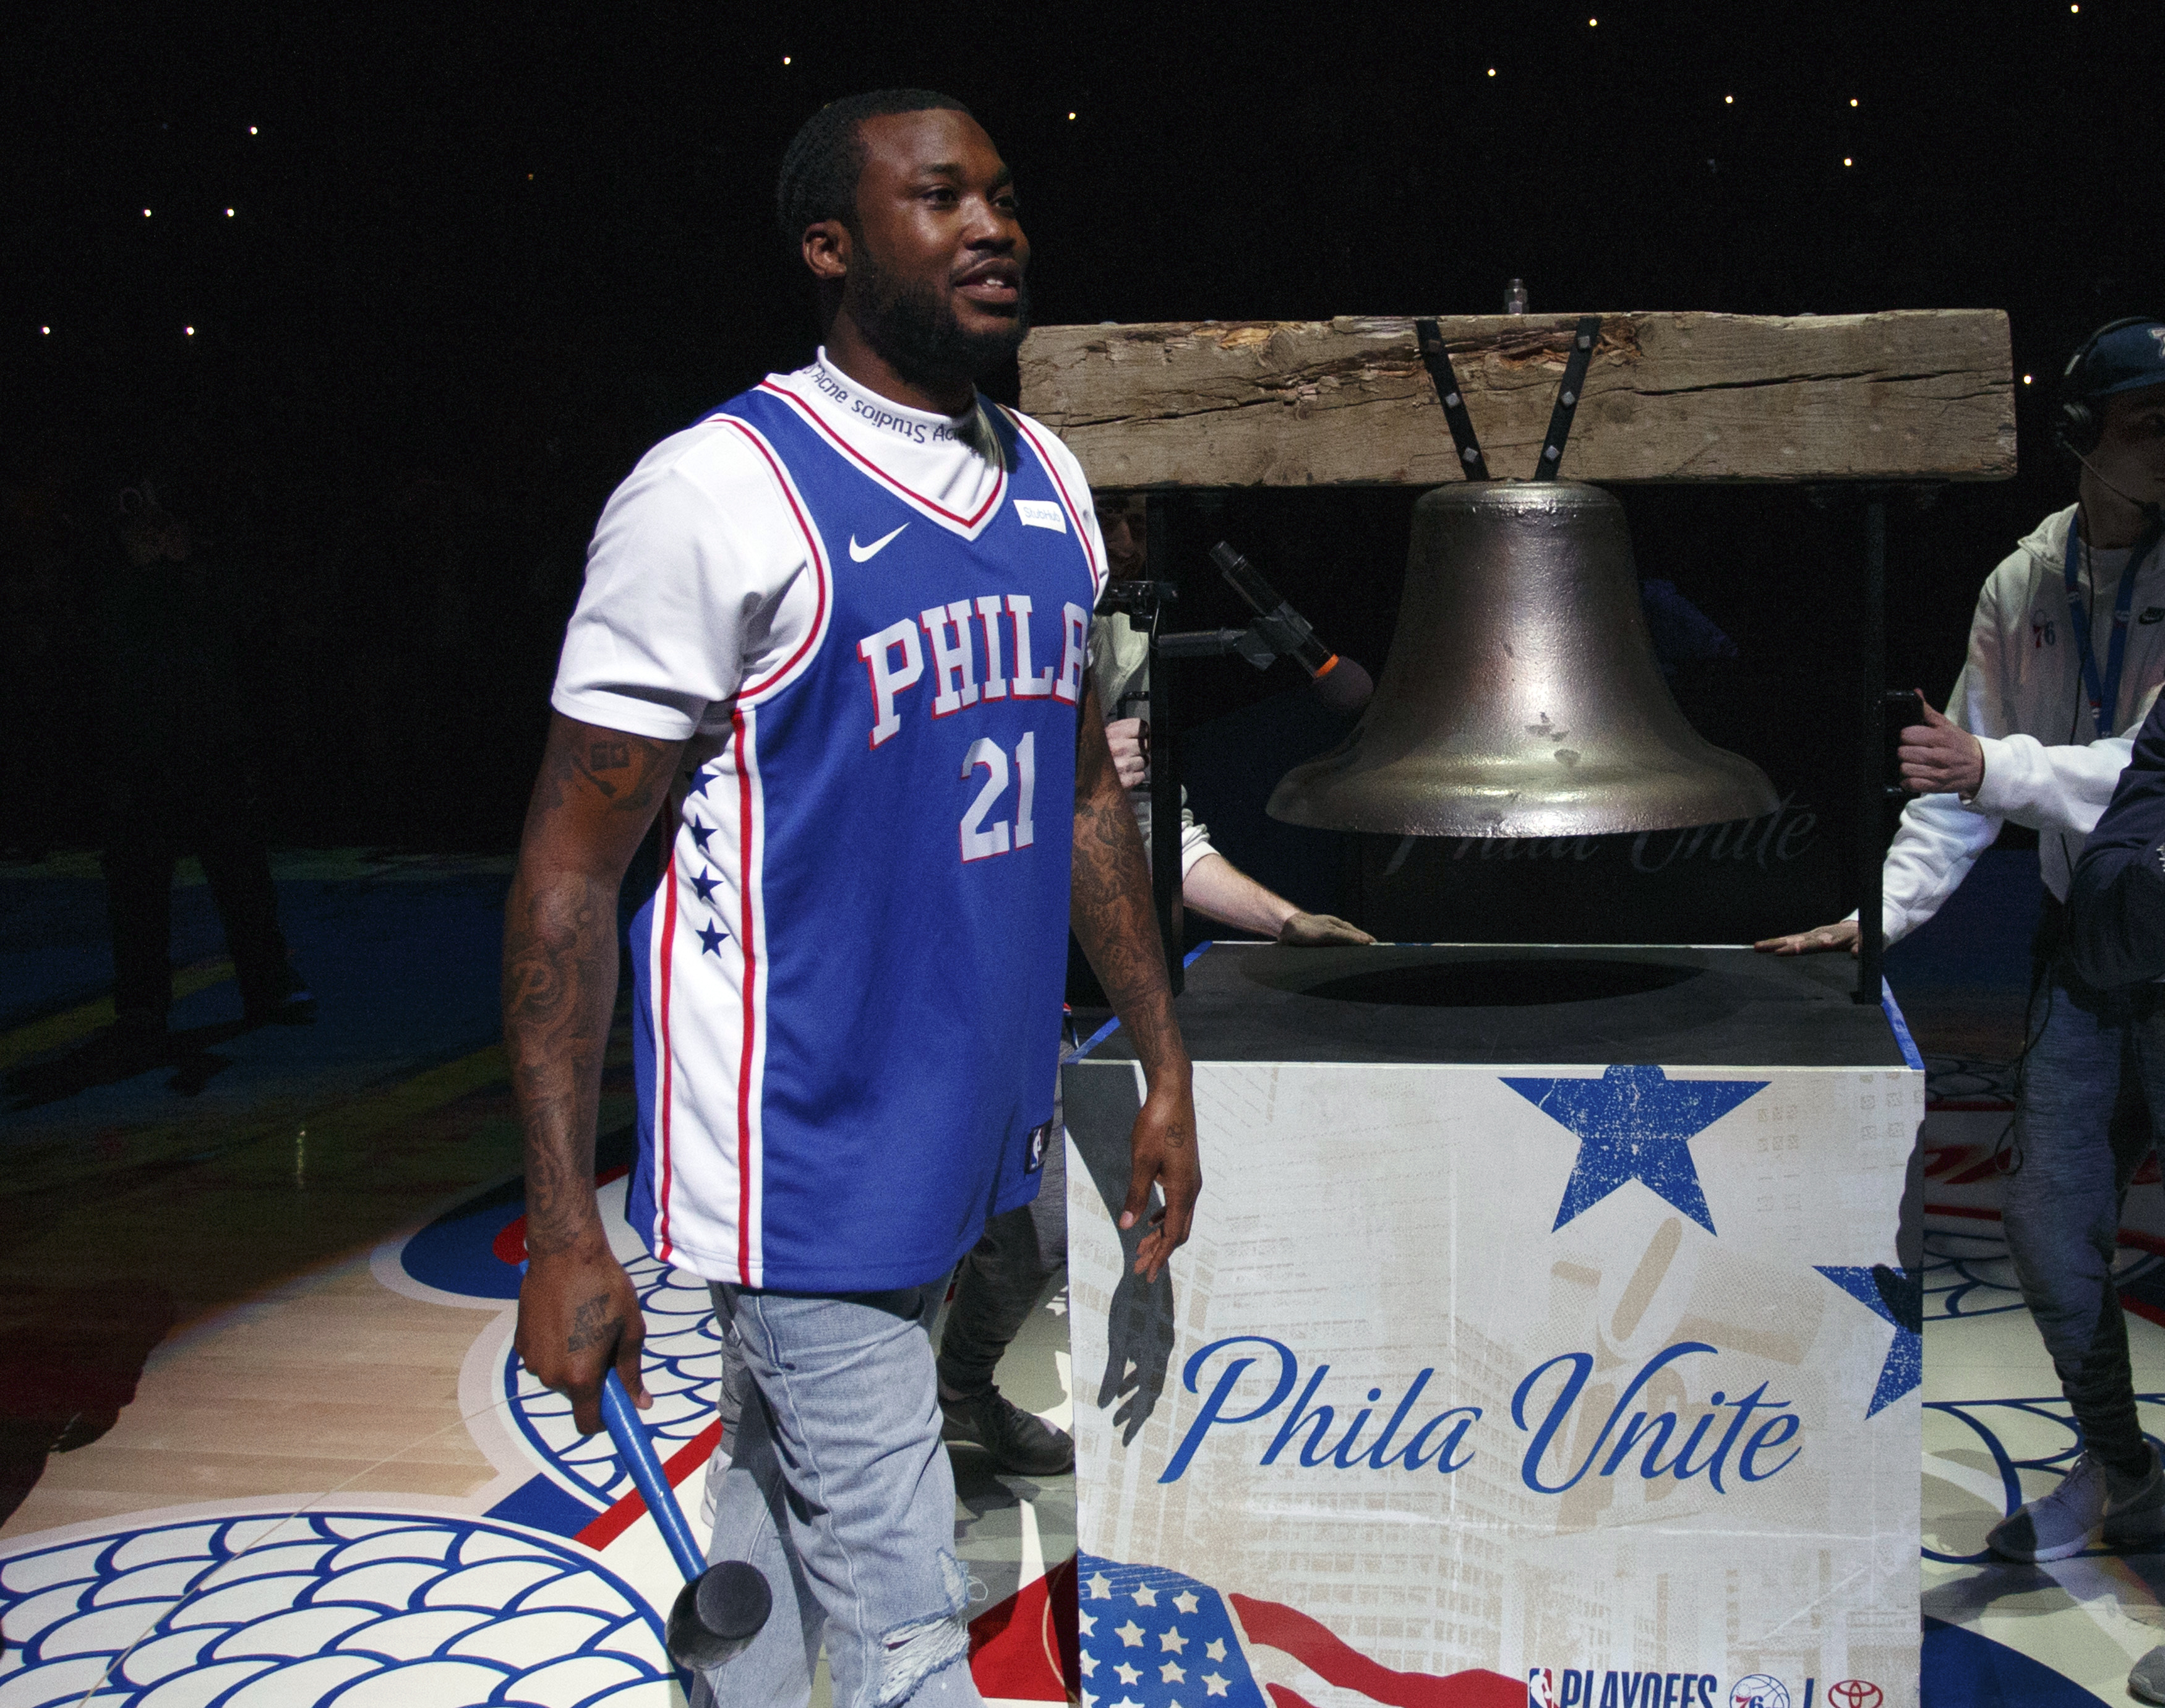 Rapper Meek Mill before Game 5 of the 76ers' first-round series in Philadelphia on Apr. 24, 2018, in Philadelphia